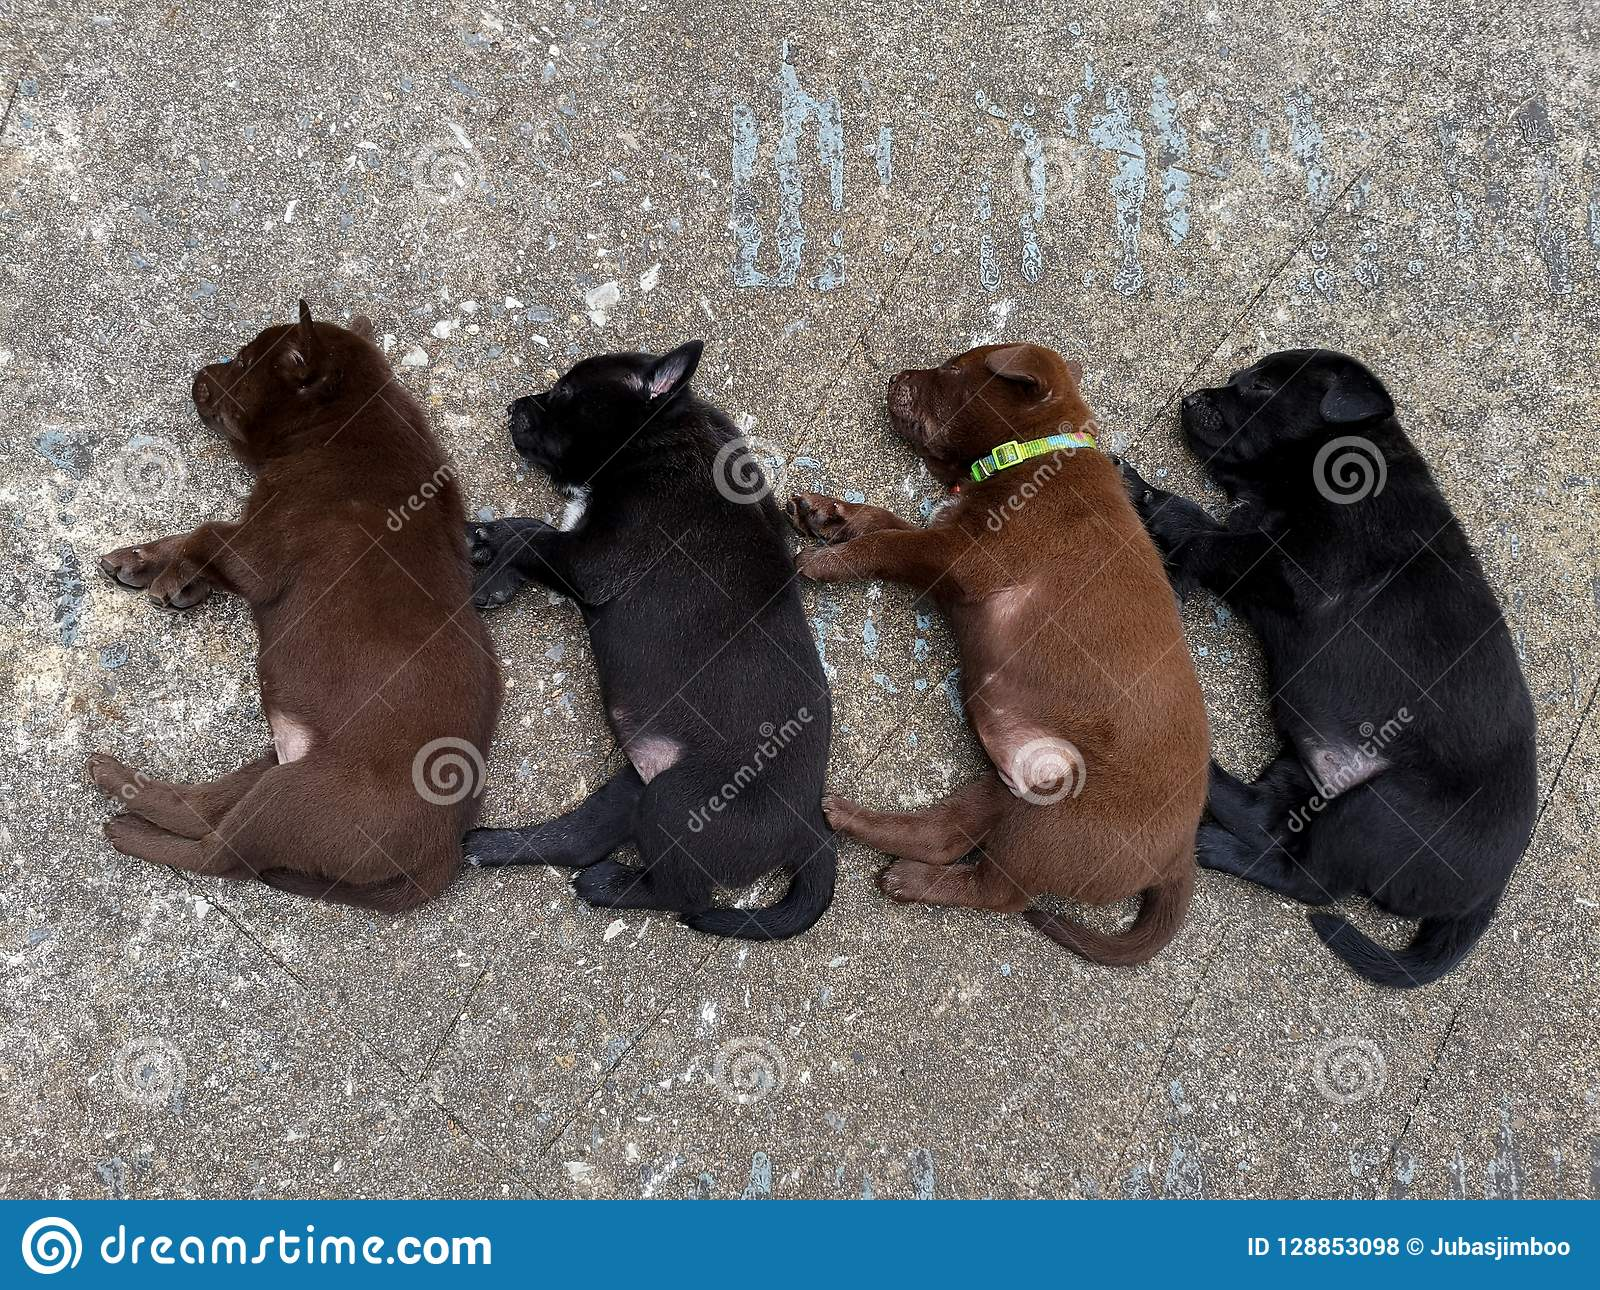 The four puppy lying on cement floor.